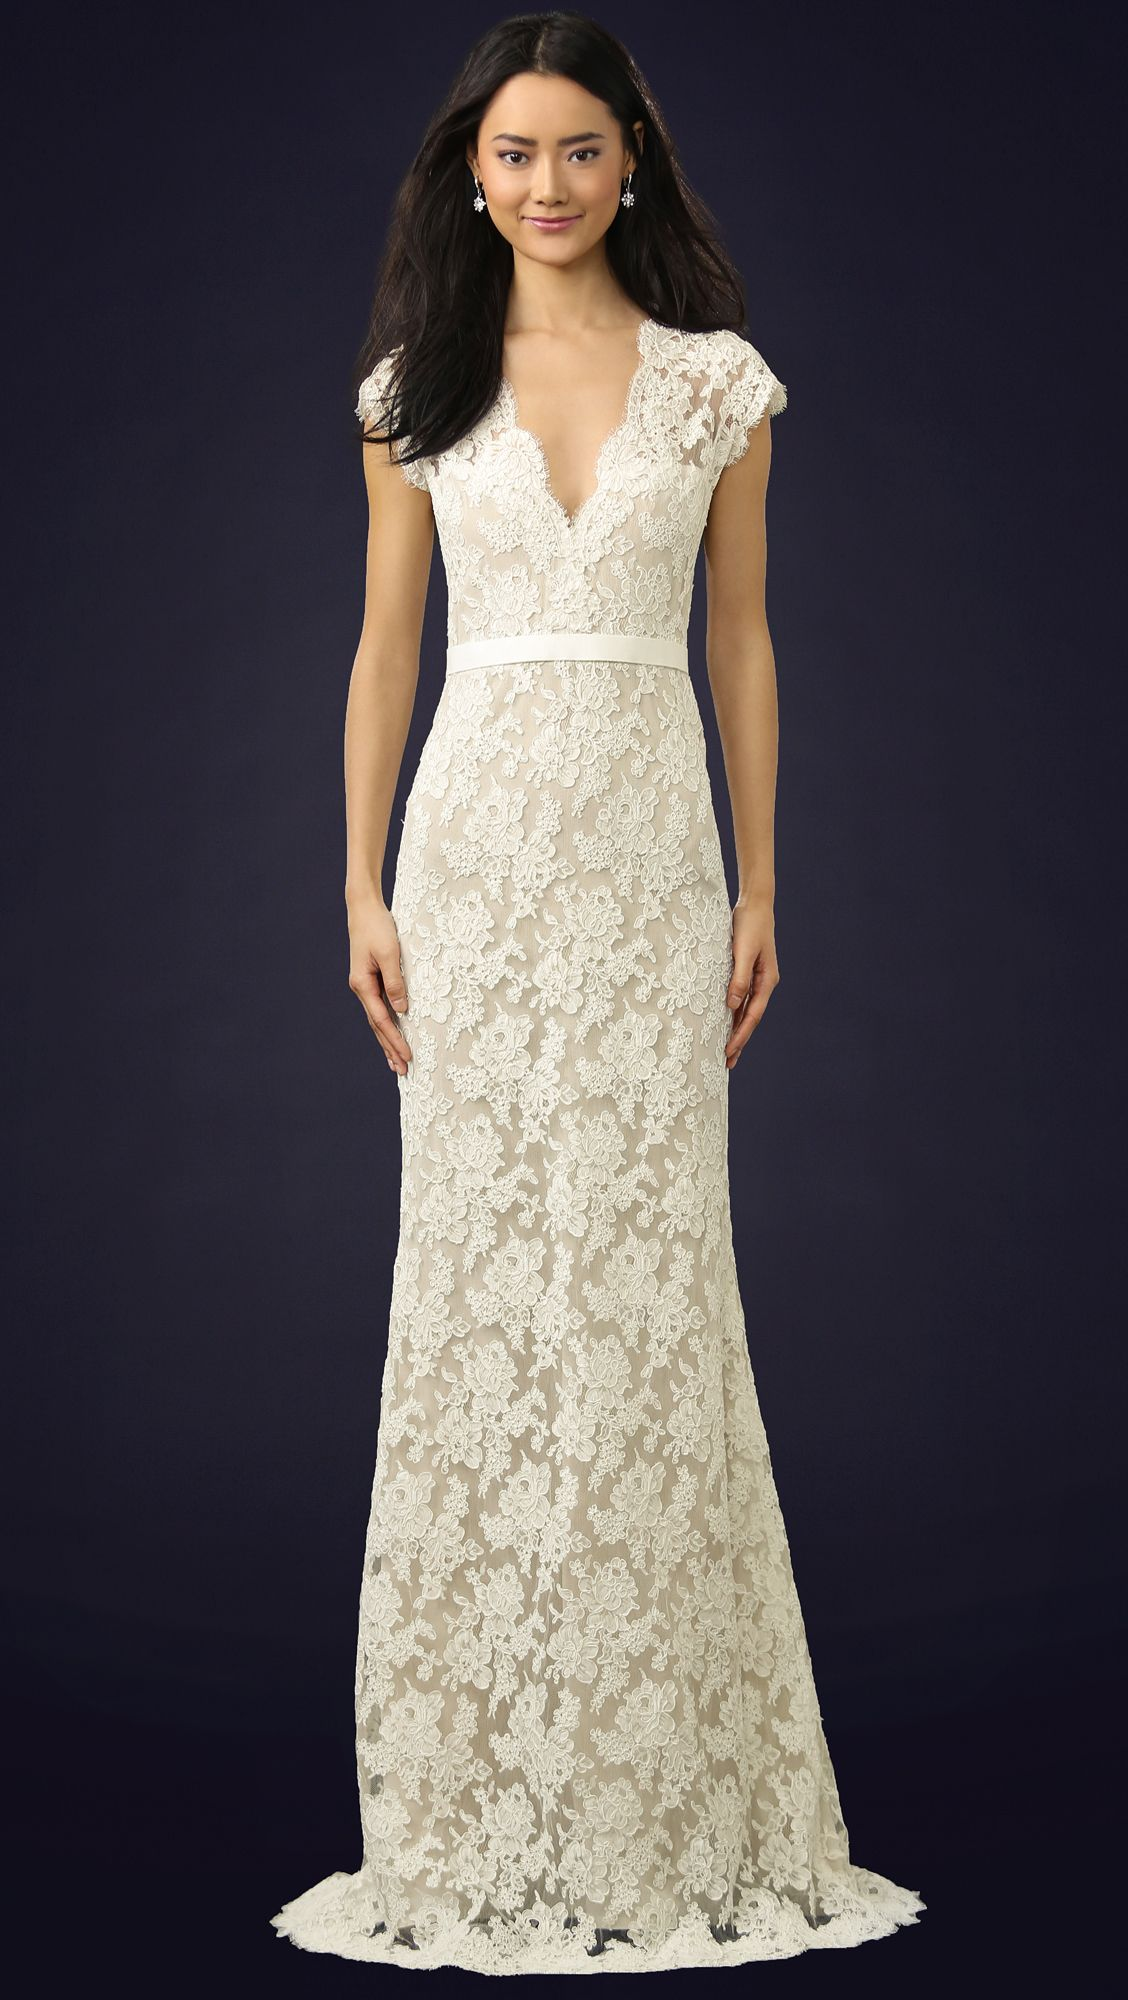 Reem Acra I'm Married Lace Gown Designer dresses casual